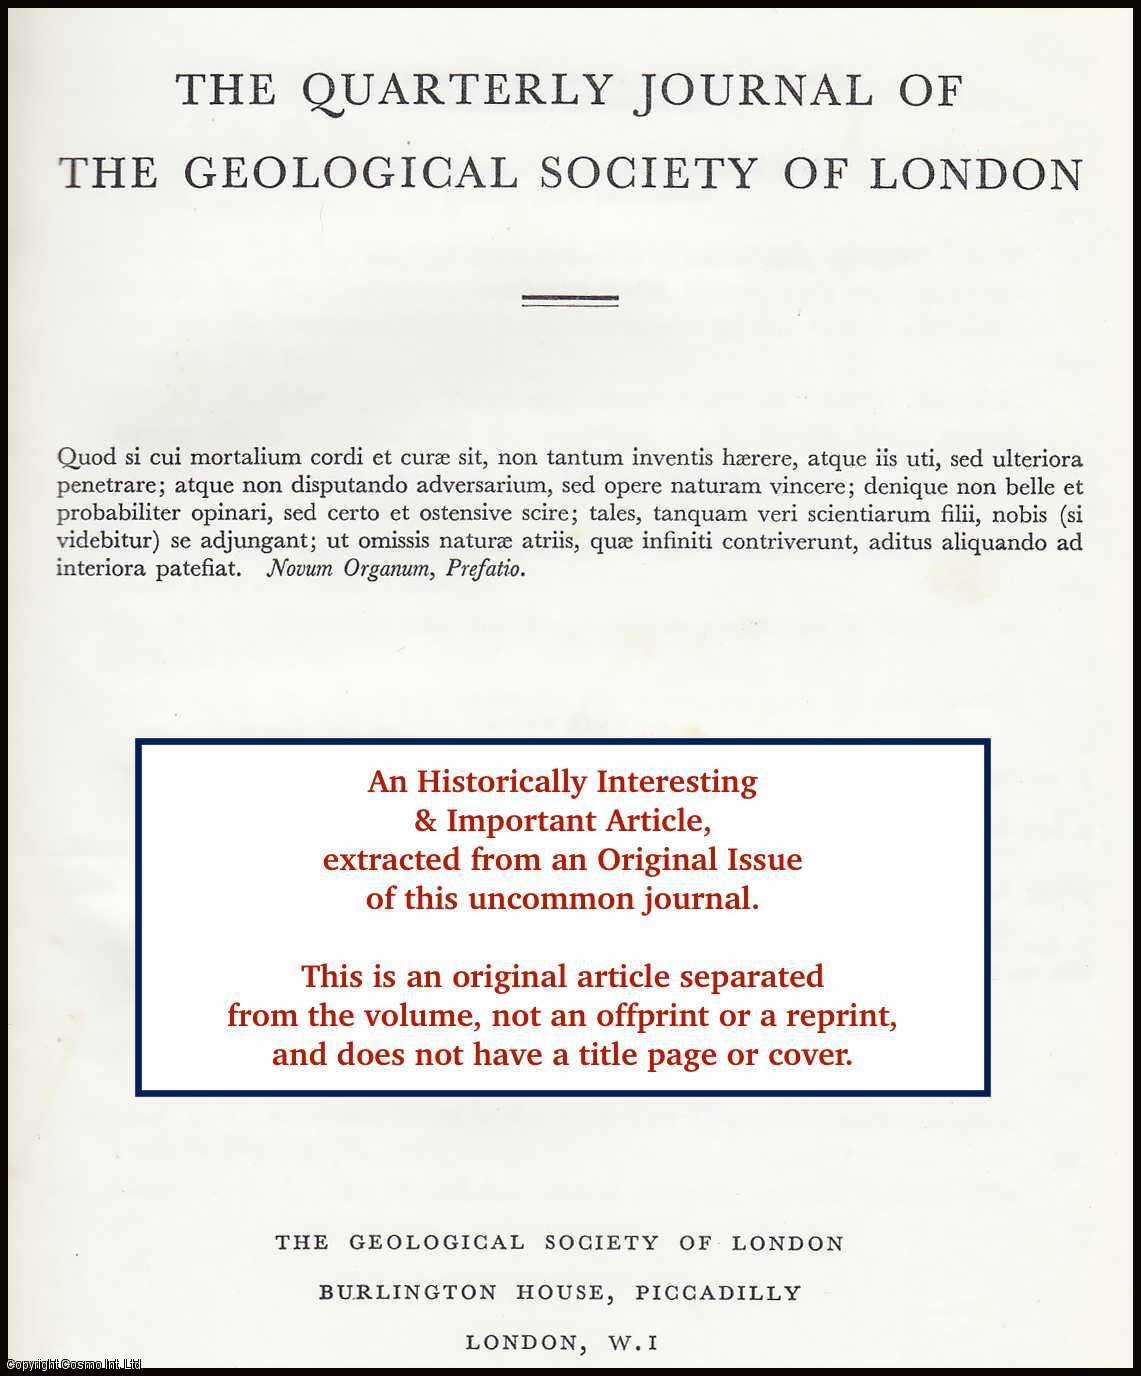 MITCHELL, GEORGE FRANCIS - The Quaternary Deposits of The Ballaugh and Kirkmichael Districts, Isle of Man. An original article from the Geological Society of London 1965.